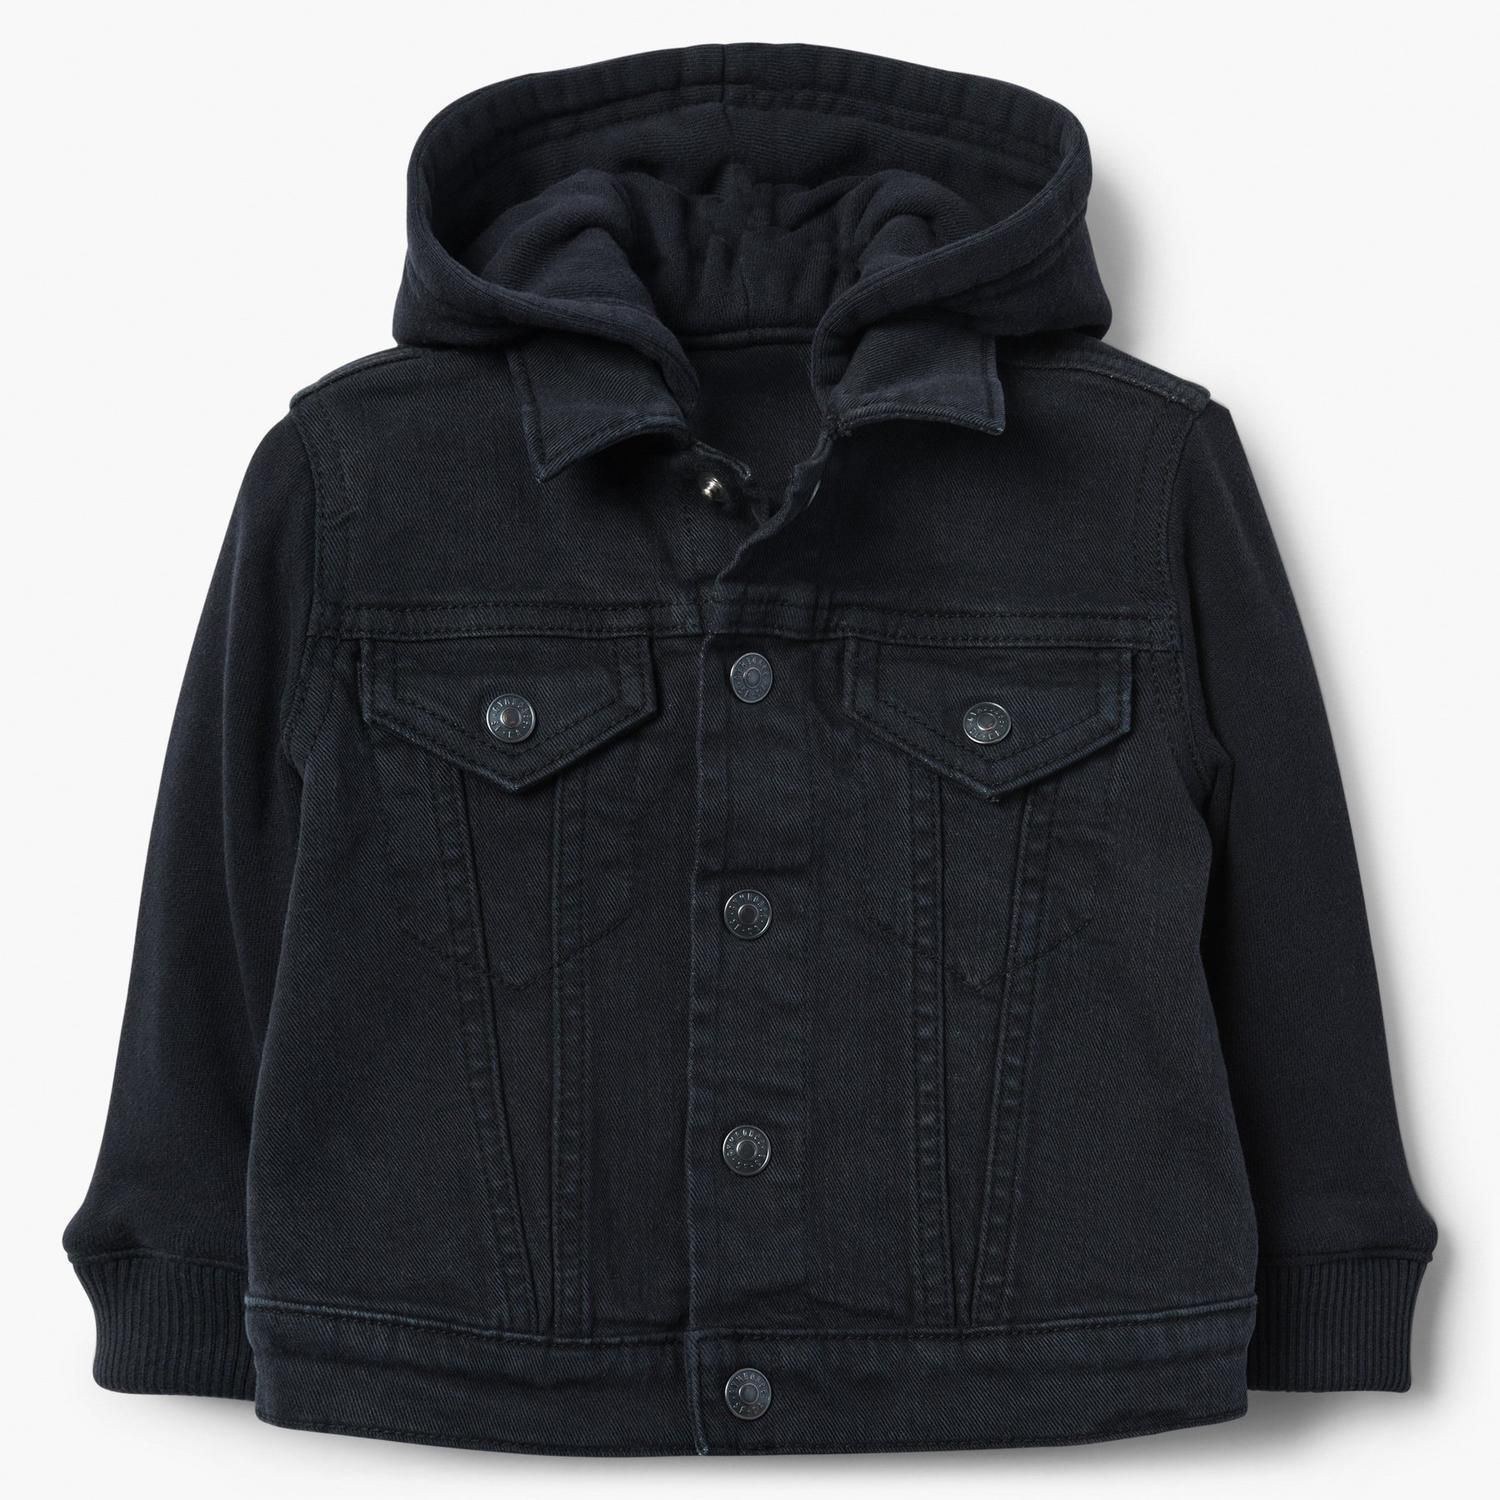 Baby Boy Black Hooded Denim Jacket By Gymboree Trendy Childrens Clothes Toddler Outfits Stylish Denim [ 1500 x 1500 Pixel ]